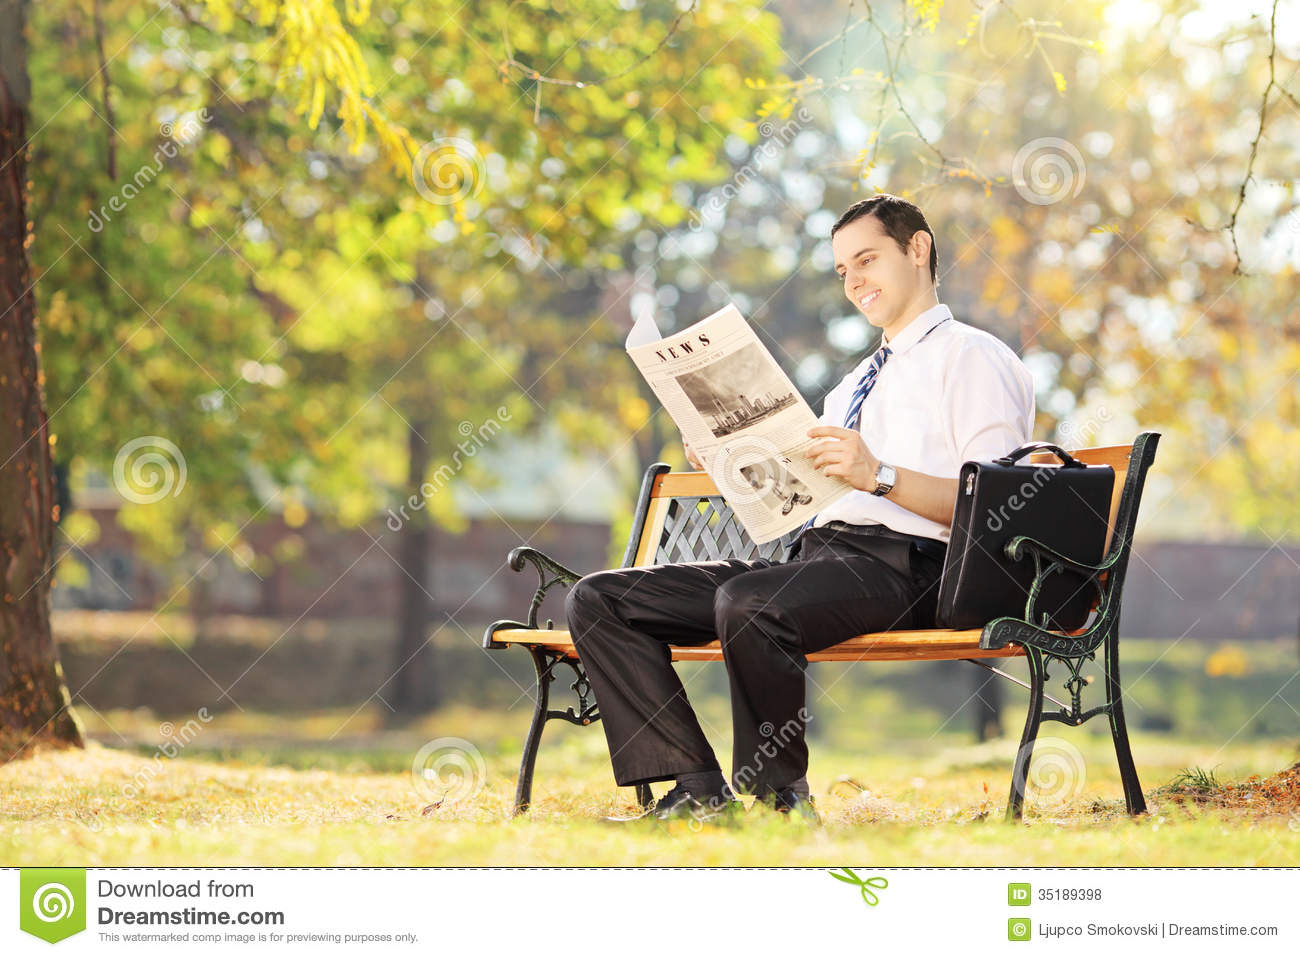 young smiling man seated on bench reading newspaper in a park stock